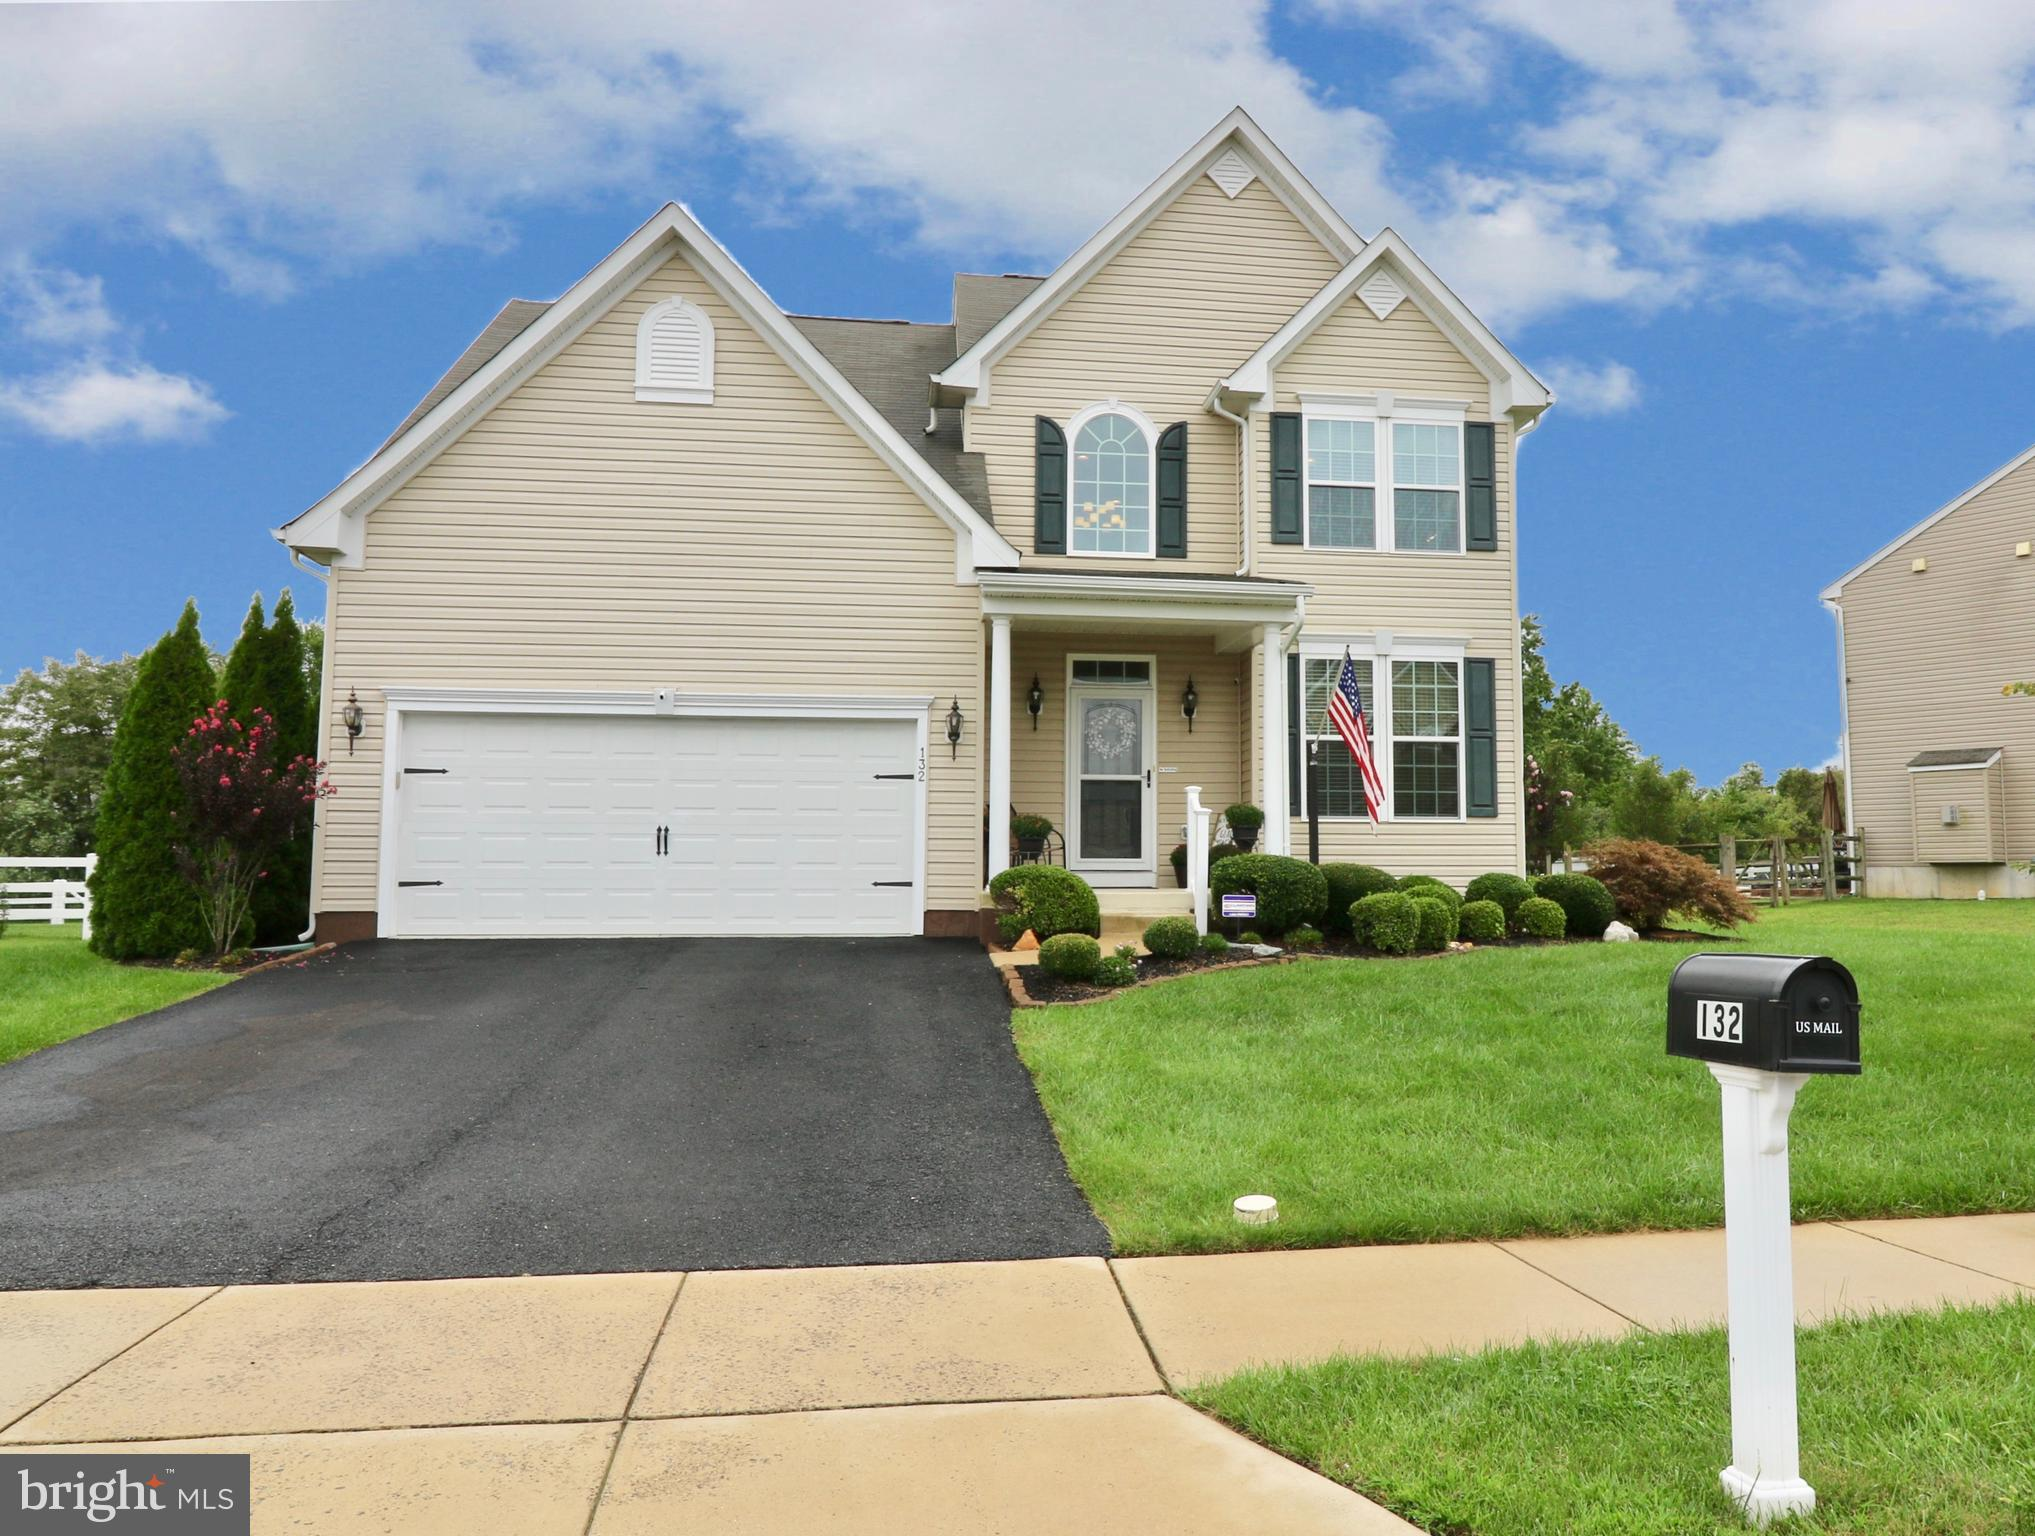 Welcome to 132 Abbigail Crossing! This Townsend Treat was built in 2013, and has been immaculately maintained.  On arrival, there is beautiful landscaping in front of the home.  Upon entering the home,  there is a foyer with 19' ceilings. The first floor also has a half bathroom, dining room, kitchen, great room and sun room. The sun room has hardwood floors. The kitchen consists of granite counter tops, a breakfast bar, a beautiful backsplash, 42 inch cherry cabinets and upgraded appliances. The great room includes vaulted ceilings with a ceiling fan. The sun room has a oversized window with a gorgeous view to the back yard and the doors open to the back patio. The master bedroom is conveniently located on the first floor with a large walk in closet, as well as a tray ceiling with fan. The master bathroom  has a custom walk-in  shower with a seat, a double vanity with solid top and tiled floor. The second floor has two nice sized bedrooms equipped with ceiling fans, a full bath and a loft that overlooks the great room. The basement has a half bath, media room, very large finished room that is used as an office and a very large storage room. This home has an attached 2 car garage with a 2 car driveway for additional parking off the street. The backyard is landscaped as well with a large paver patio that includes a fire pit, 8x12 storage building that matches the house siding and split rail fencing .